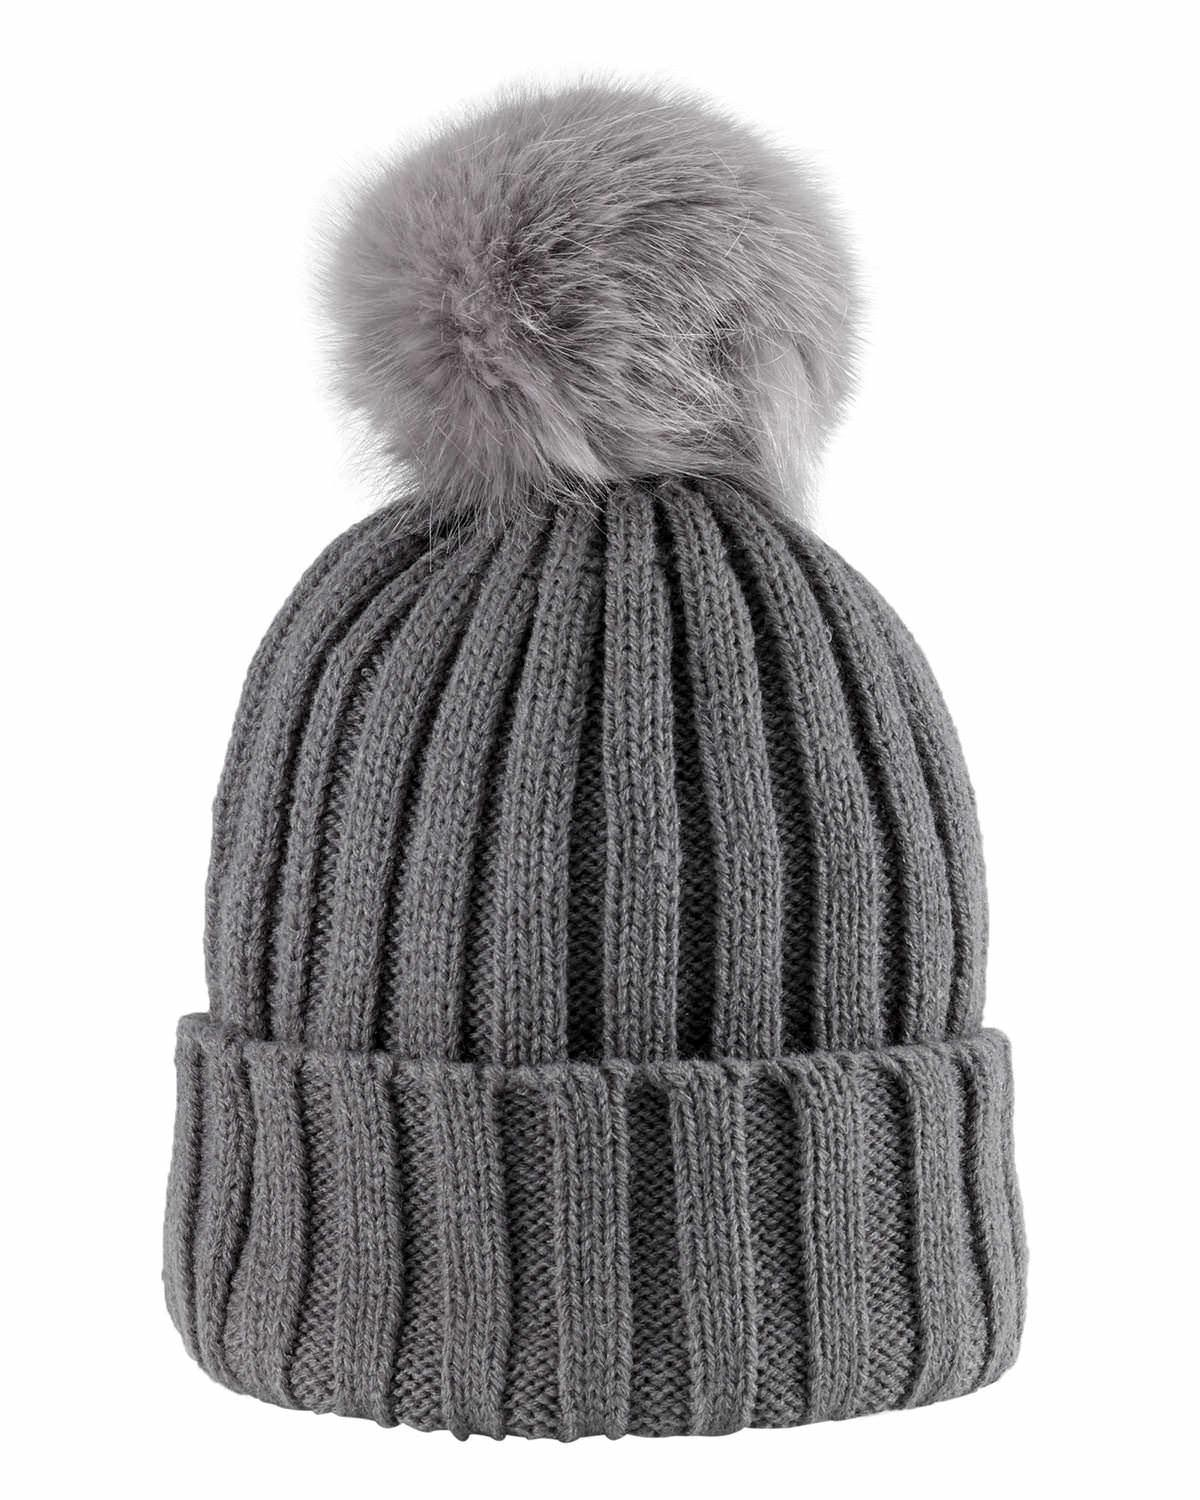 c8c9e1241d8 Lyst - Phase Eight Wool Blend Pom Pom Hat in Gray